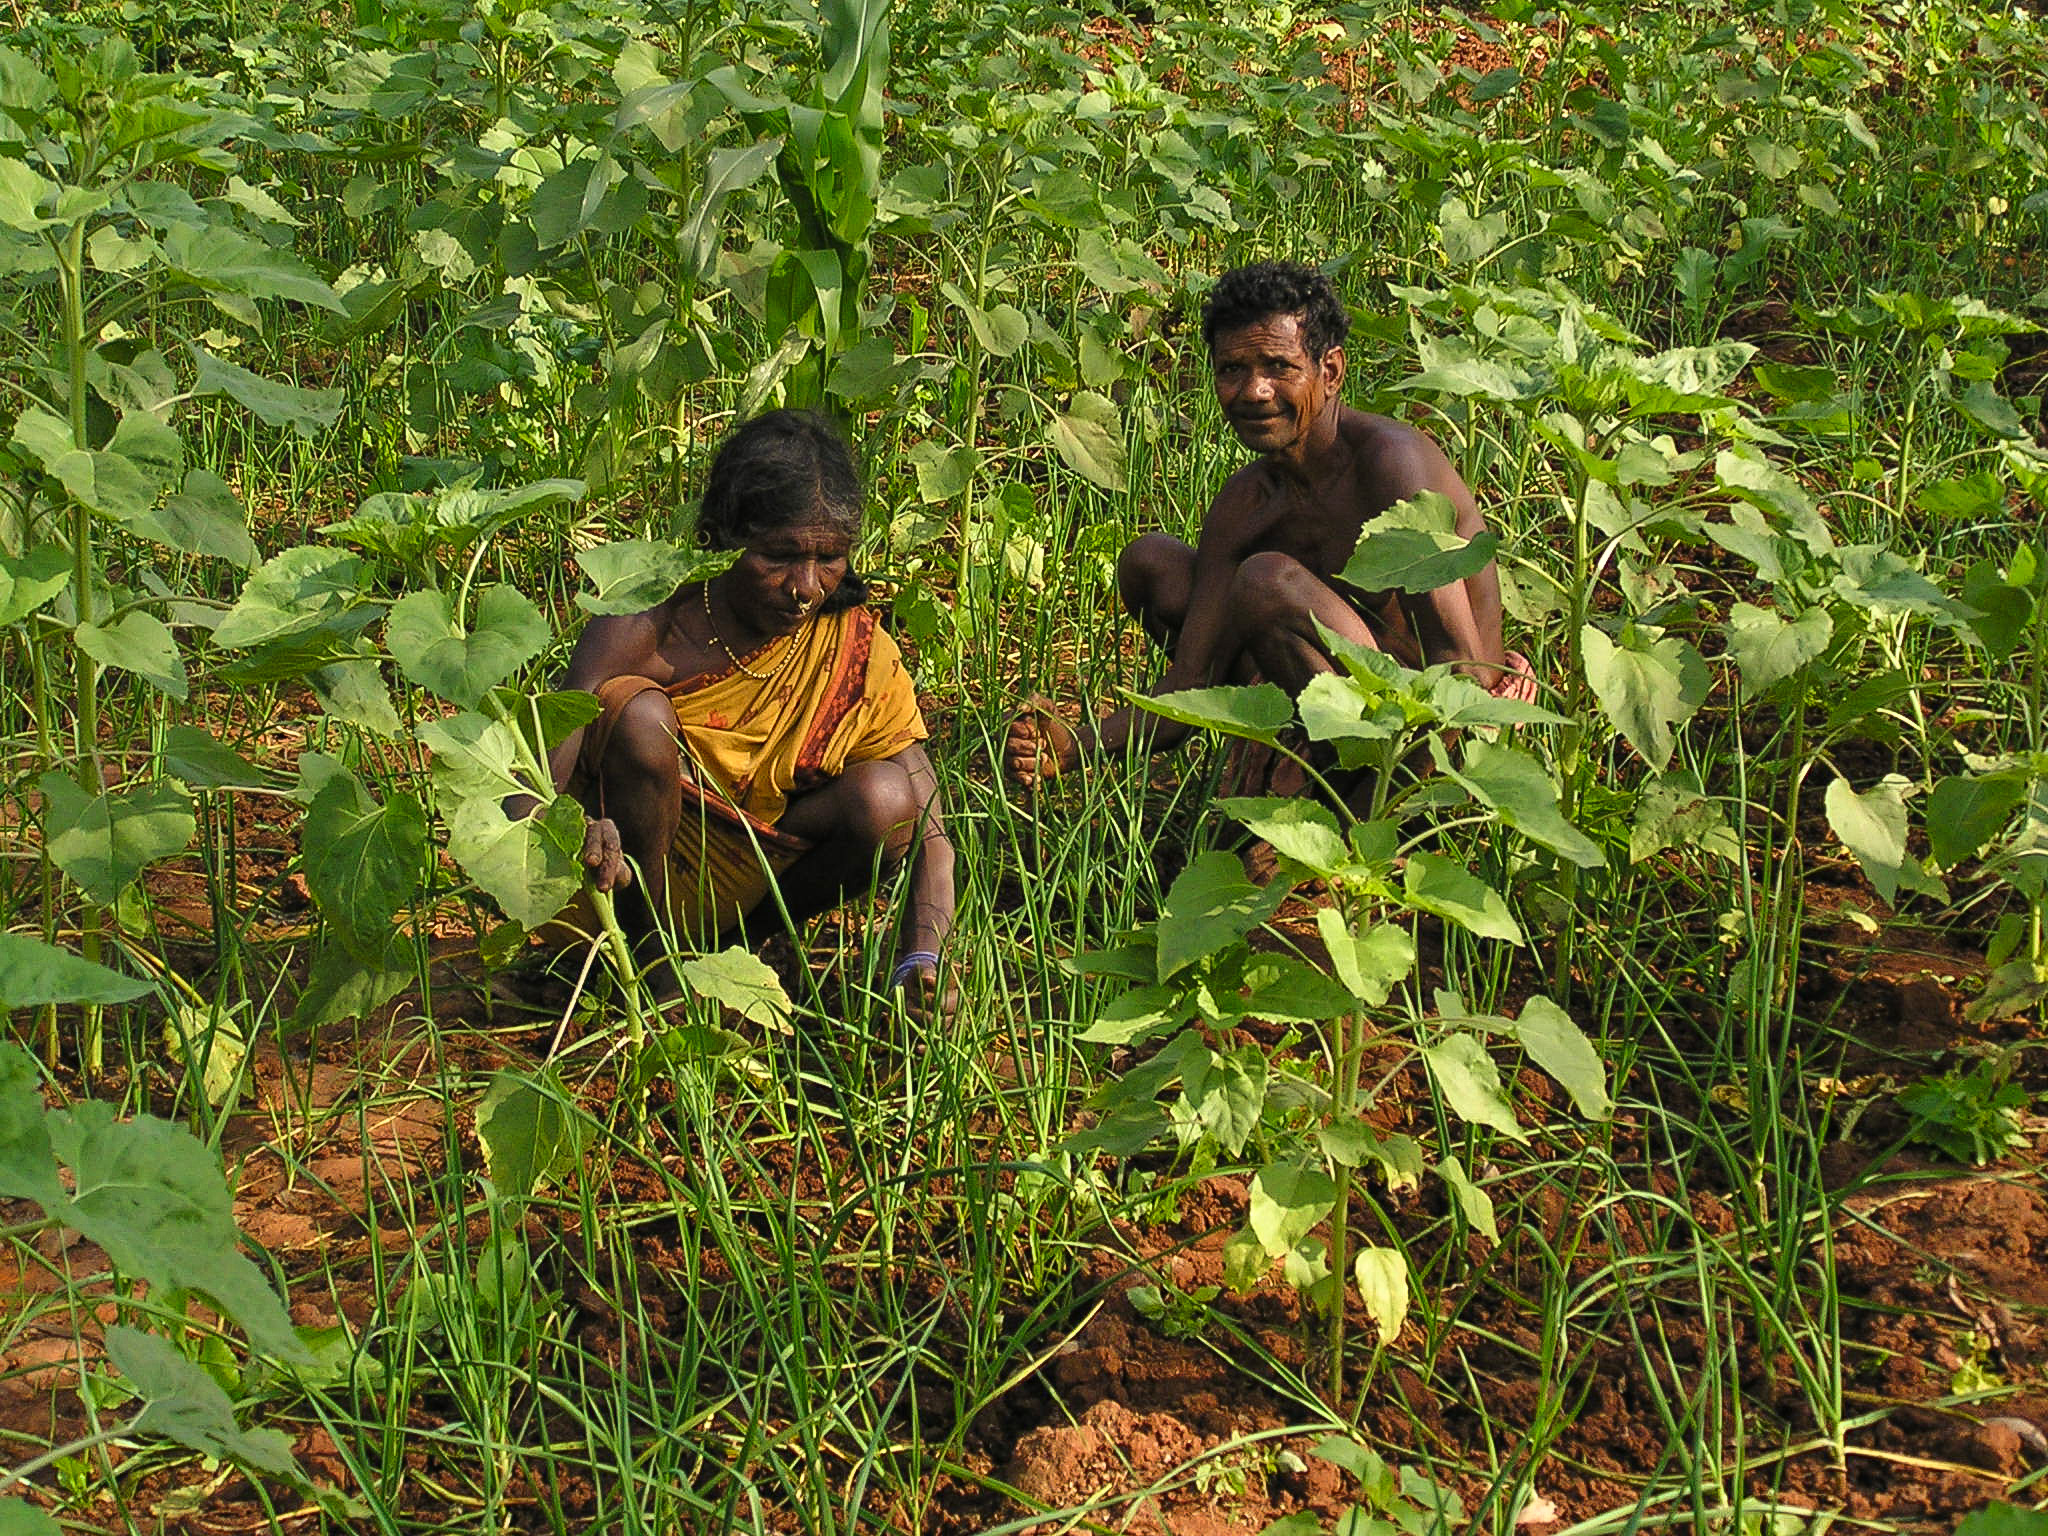 Farmers are back to mixed farming in Kashipur